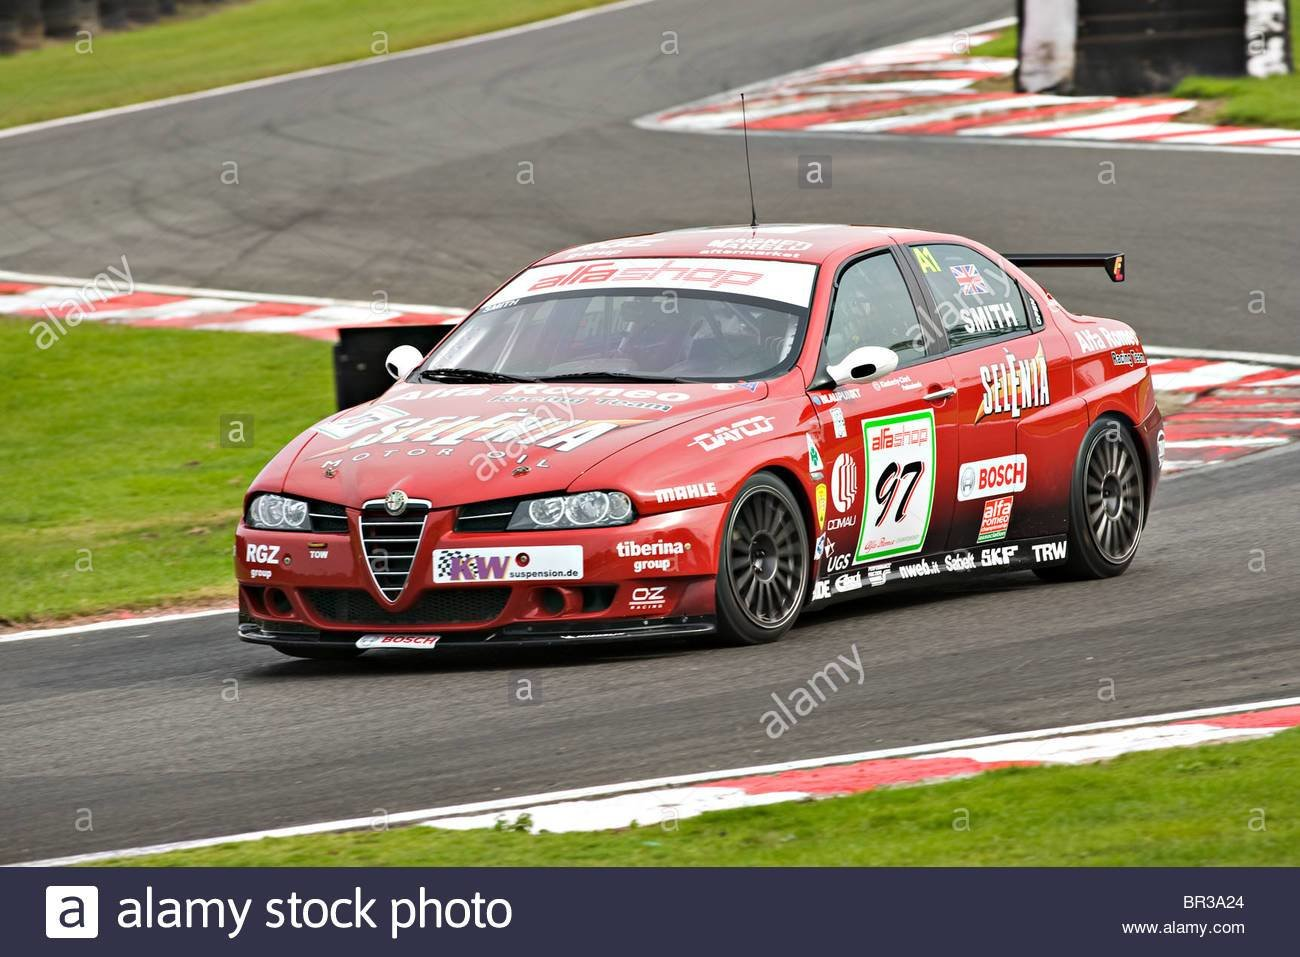 Latest Alfashop Alfa Romeo 156 Saloon Racing Car Exiting Brittens Free Download